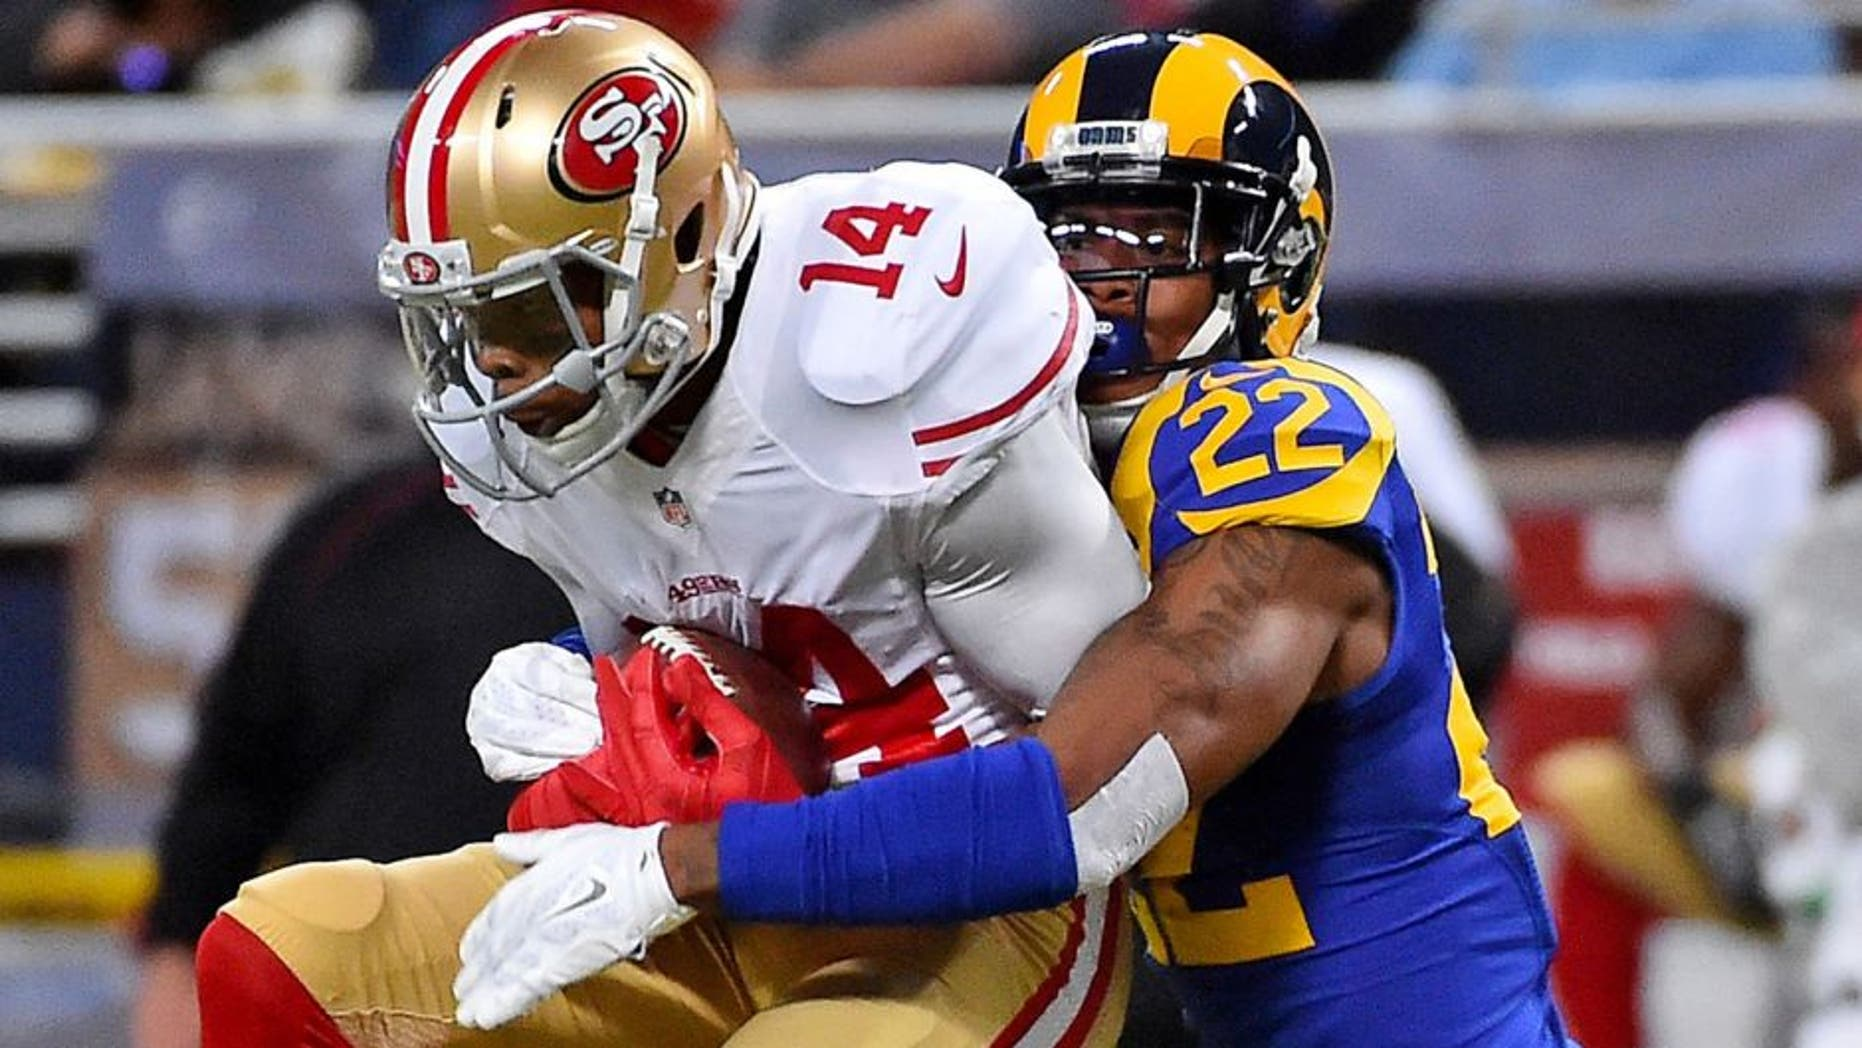 Nov 1, 2015; St. Louis, MO, USA; St. Louis Rams cornerback Trumaine Johnson (22) tackles San Francisco 49ers wide receiver Jerome Simpson (14) during the second half at the Edward Jones Dome. Mandatory Credit: Jasen Vinlove-USA TODAY Sports